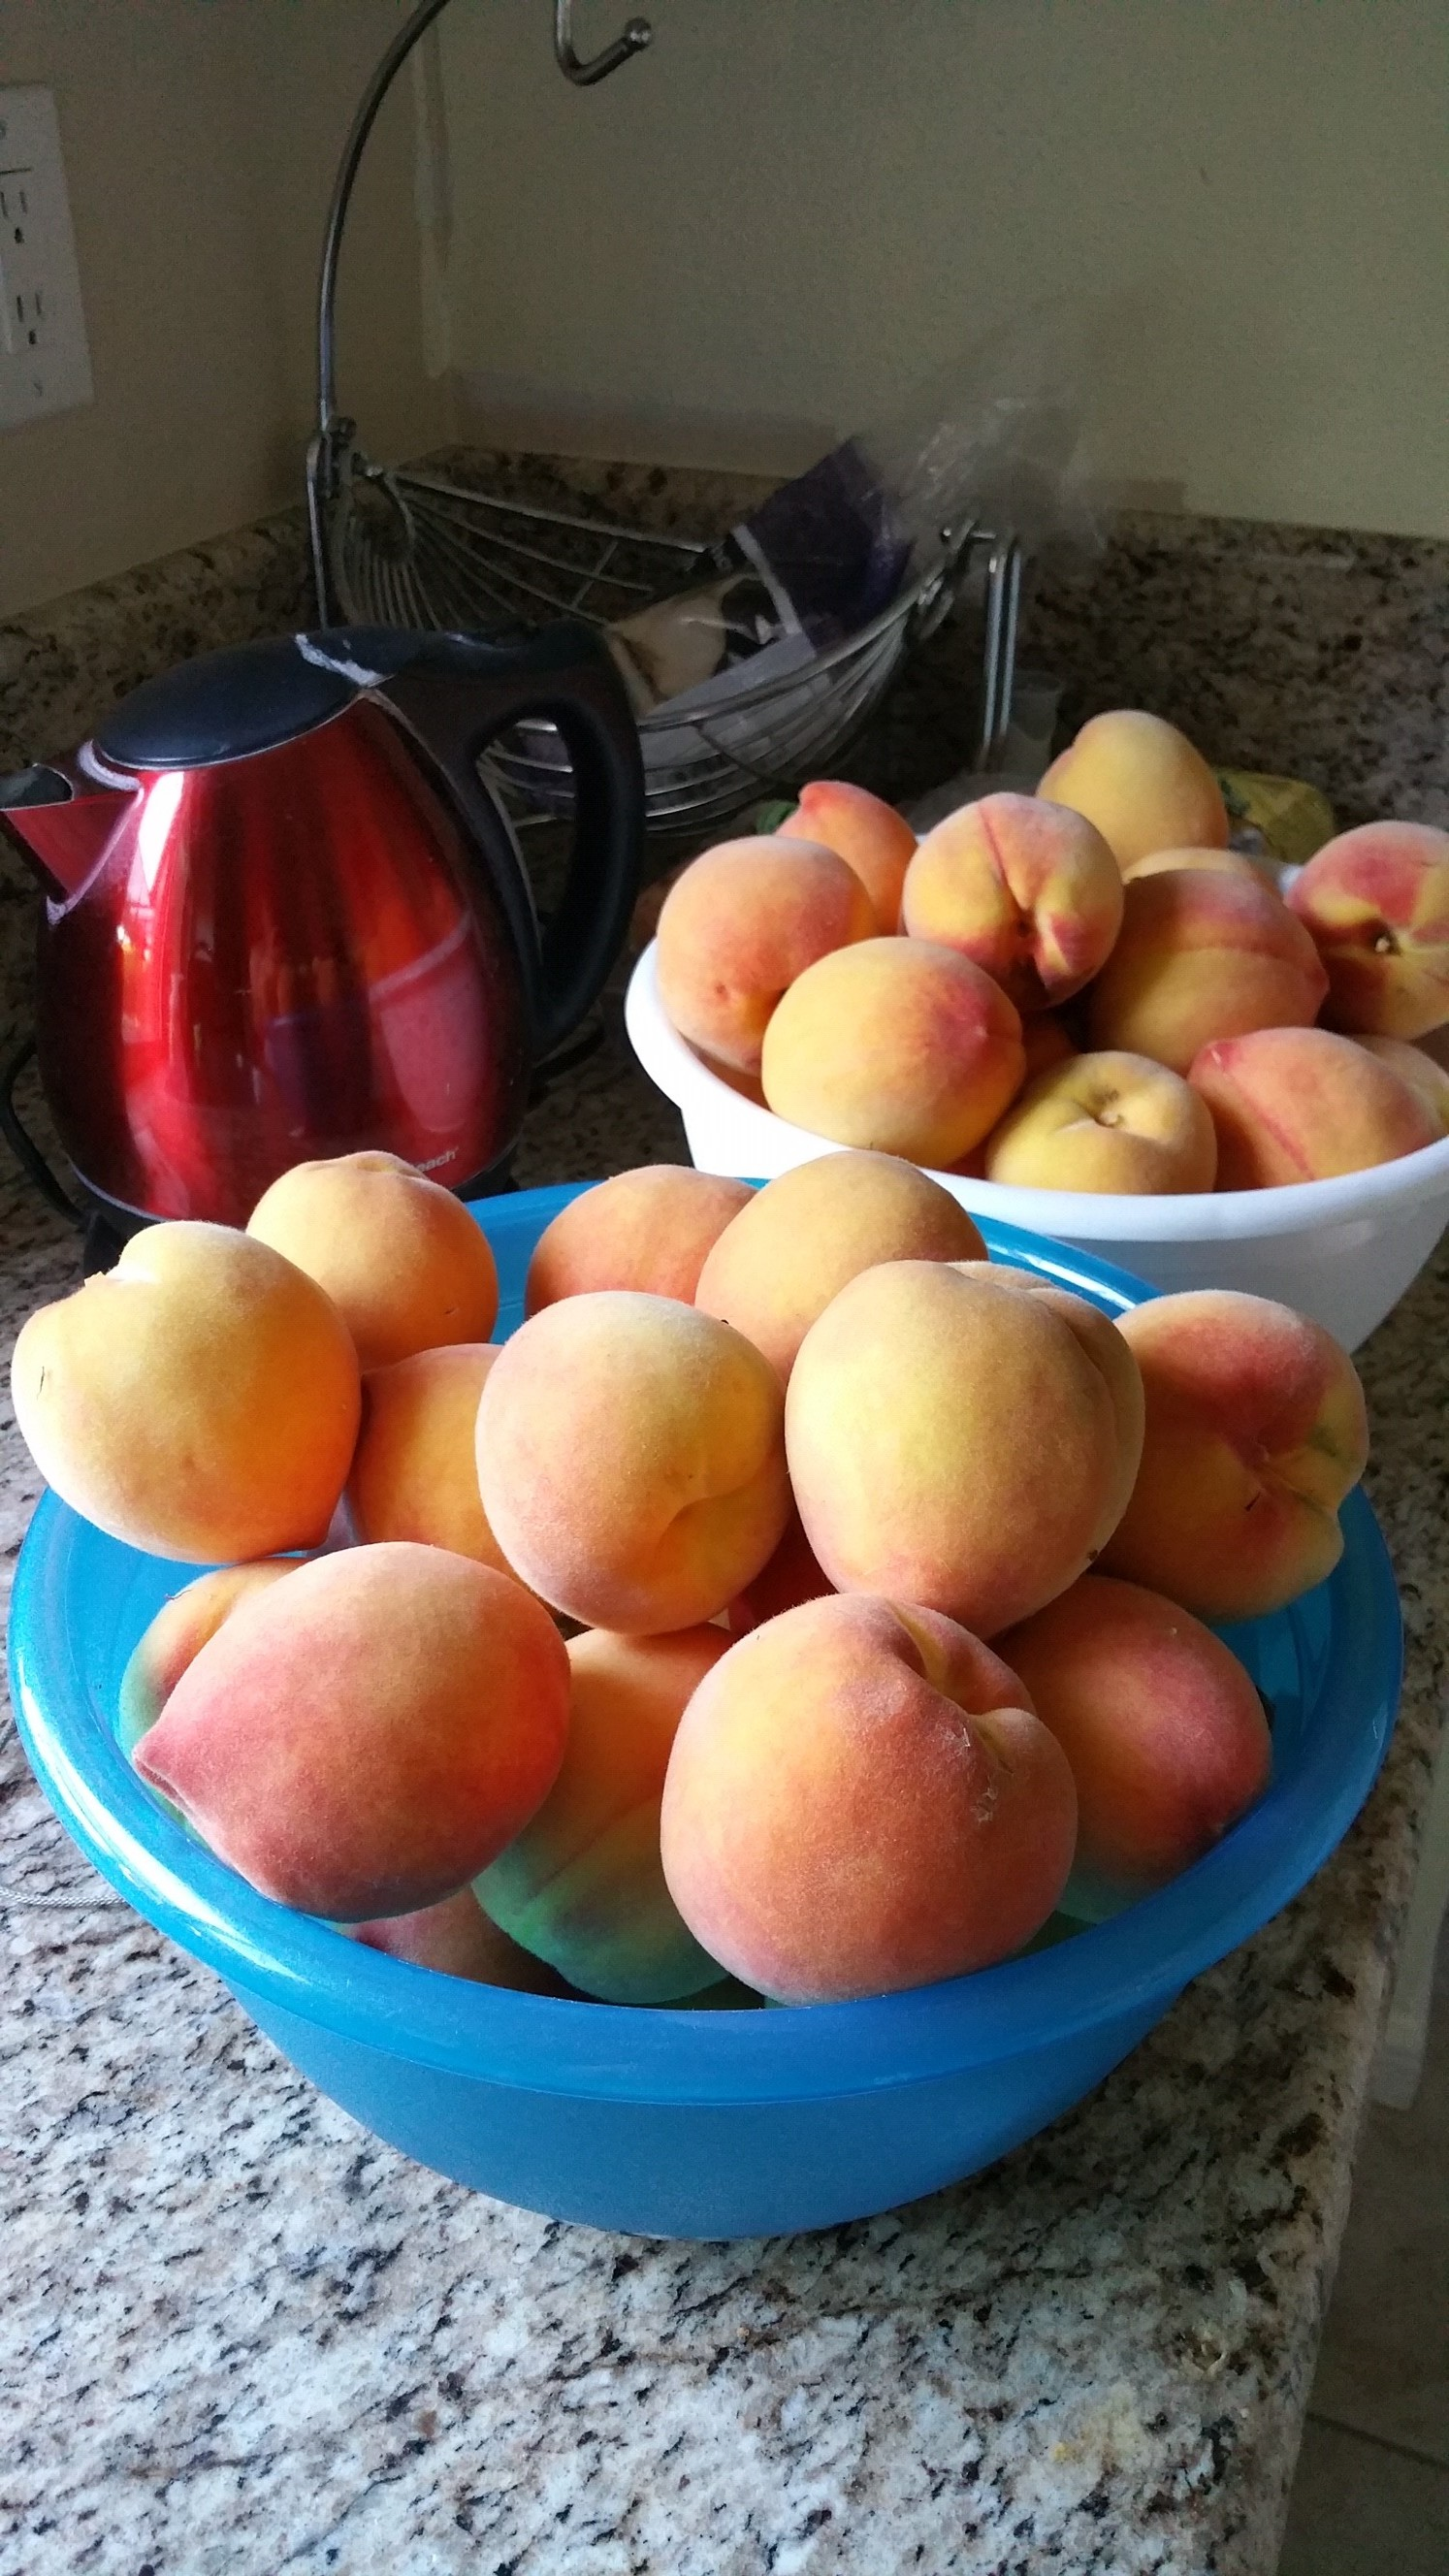 Nancy Wickus, Agriculture/Weights and Measures, grows peaches.